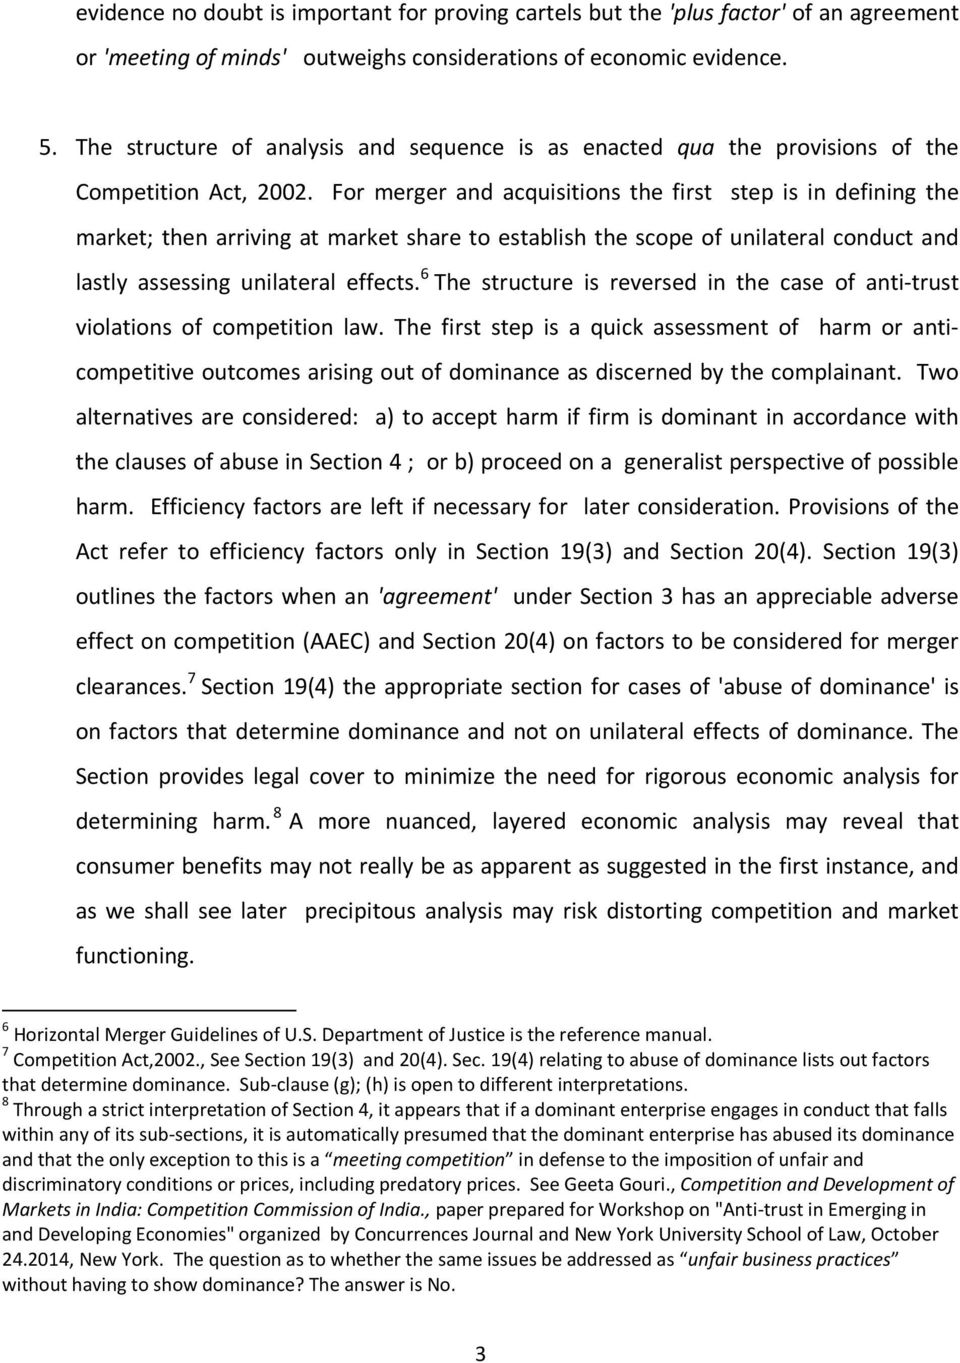 Economic Evidence In Competition Law Enforcement In India By Dr